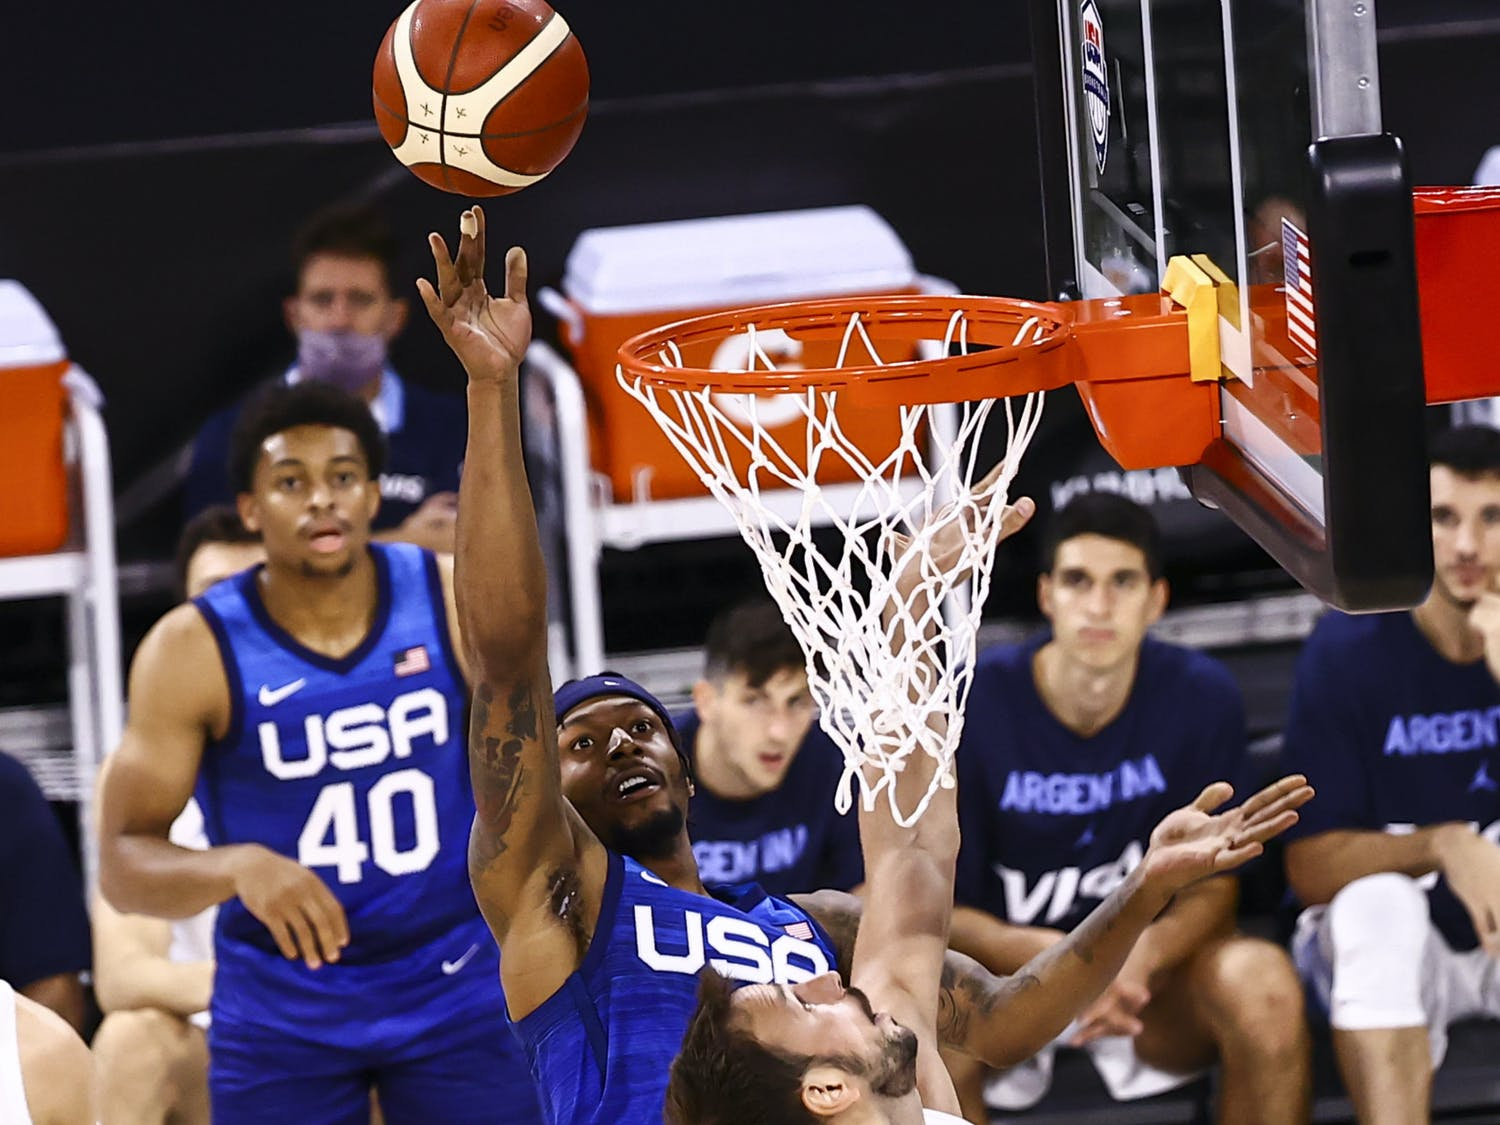 United States' Bradley Beal shoots around Argentina's Marcos Delia during the second half of an exhibition basketball game in Las Vegas on Tuesday, July 13, 2021. (Chase Stevens/Las Vegas Review-Journal via AP)